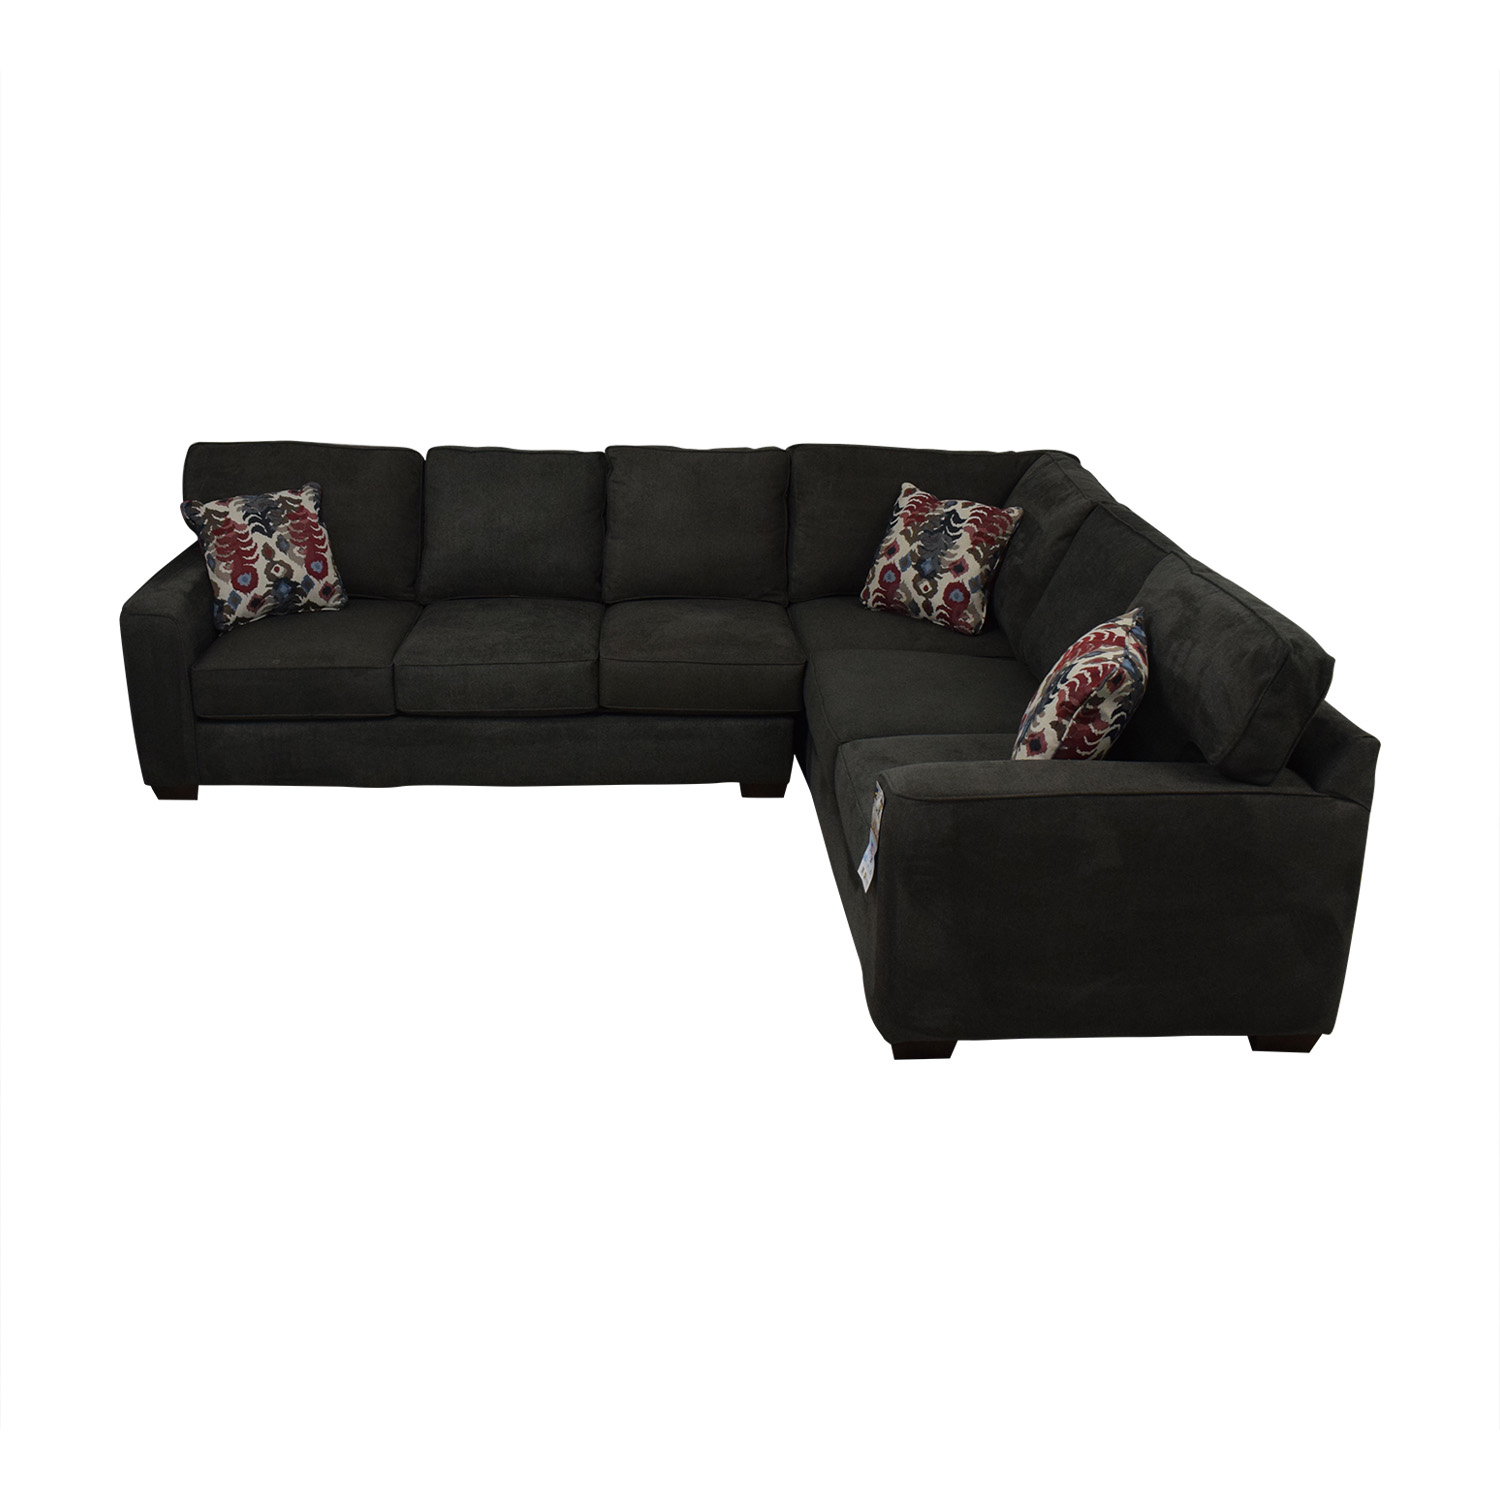 buy Klaussner Abbott Two-Piece Sectional Sofa Klaussner Sofas